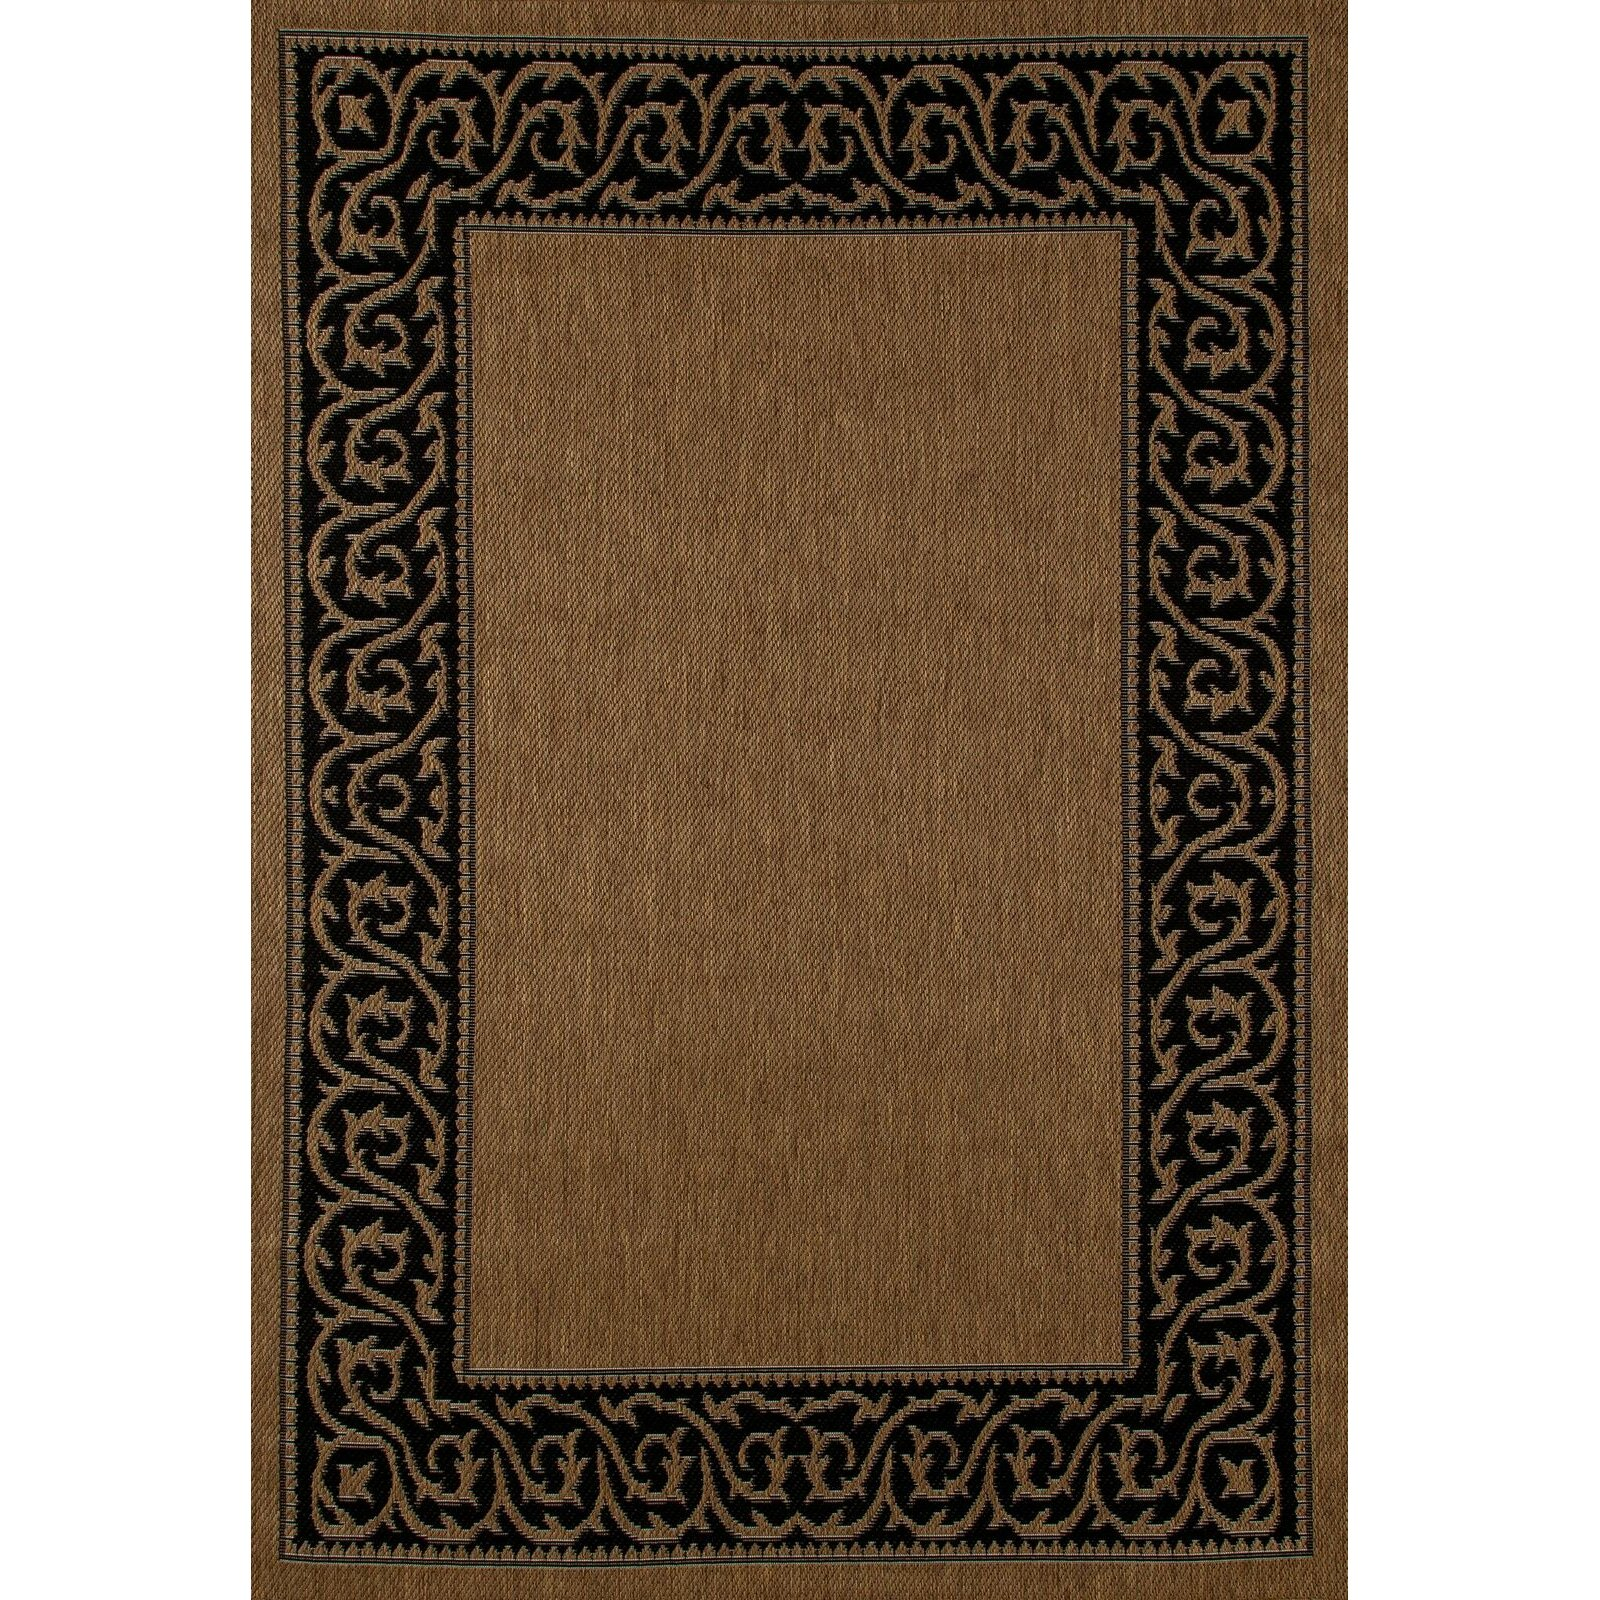 Indoor Outdoor Rugs Black And White: Art Carpet Plymouth Brown/Black Indoor/Outdoor Area Rug